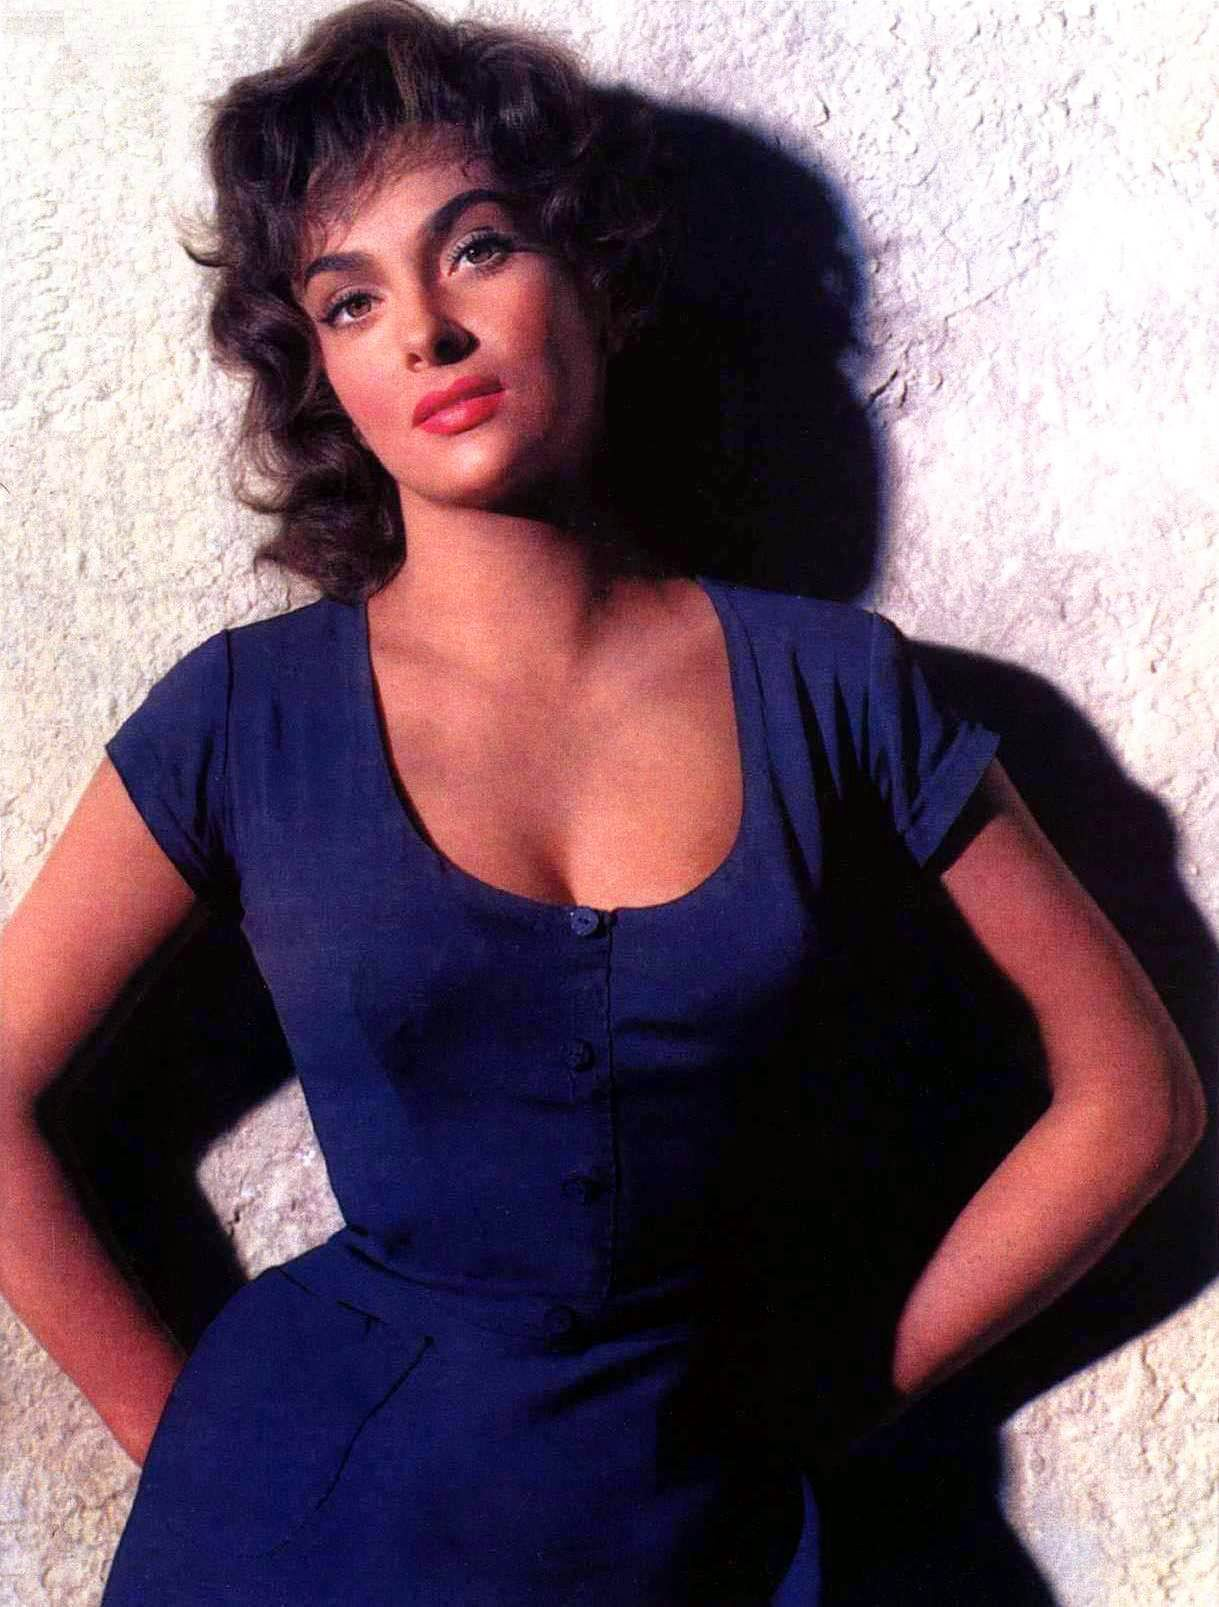 gina lollobrigida imagesgina lollobrigida 2016, gina lollobrigida 2017, gina lollobrigida le bambole, gina lollobrigida photo, gina lollobrigida quotes, gina lollobrigida rose, gina lollobrigida 2014, gina lollobrigida notre dame de paris, gina lollobrigida dresses, gina lollobrigida wikipedia, gina lollobrigida bilder, gina lollobrigida video, gina lollobrigida images, gina lollobrigida sculptures, gina lollobrigida and marilyn monroe, gina lollobrigida birthday, gina lollobrigida filmography, gina lollobrigida eta, gina lollobrigida fidanzato, gina lollobrigida gagarin